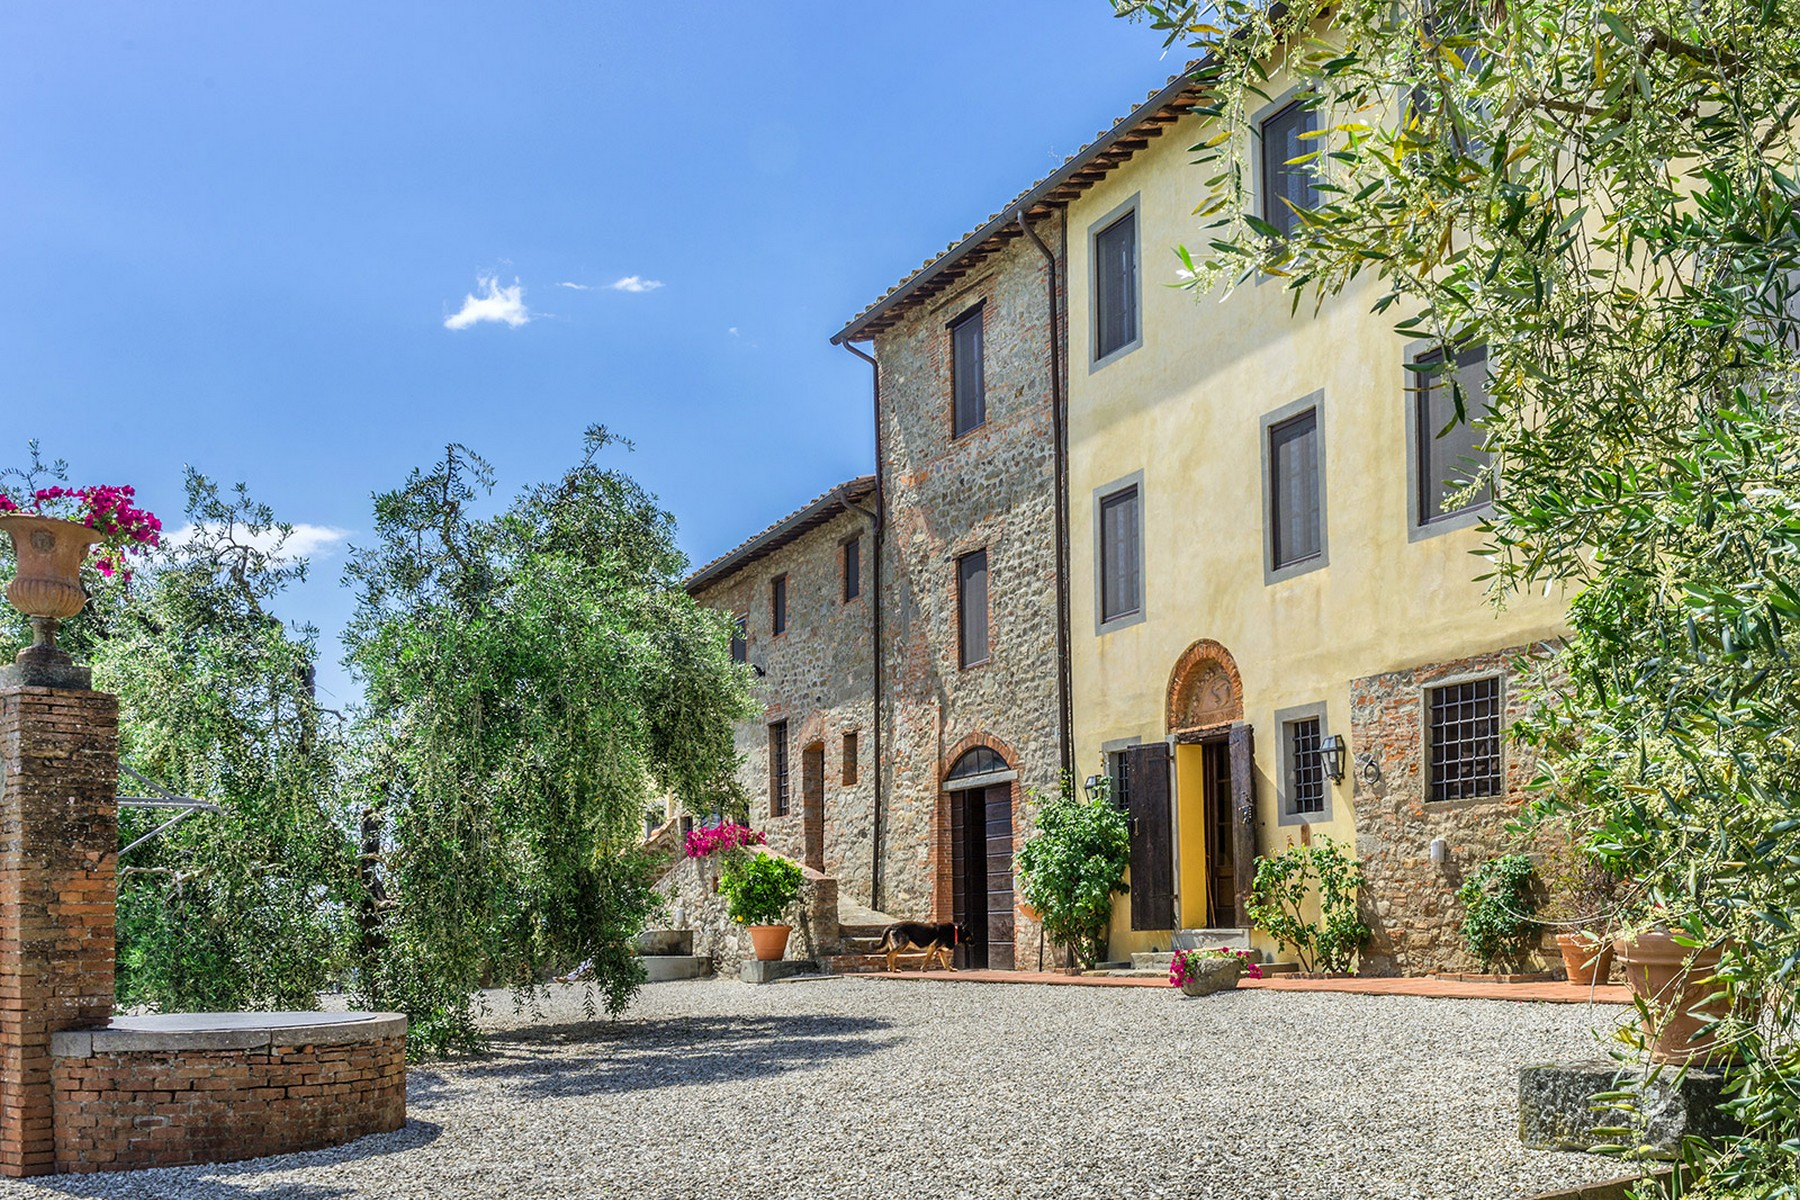 Additional photo for property listing at Tuscan estate near Lucca with land Camigliano San Gemma Camigliano San Gemma, Lucca 55100 Italy